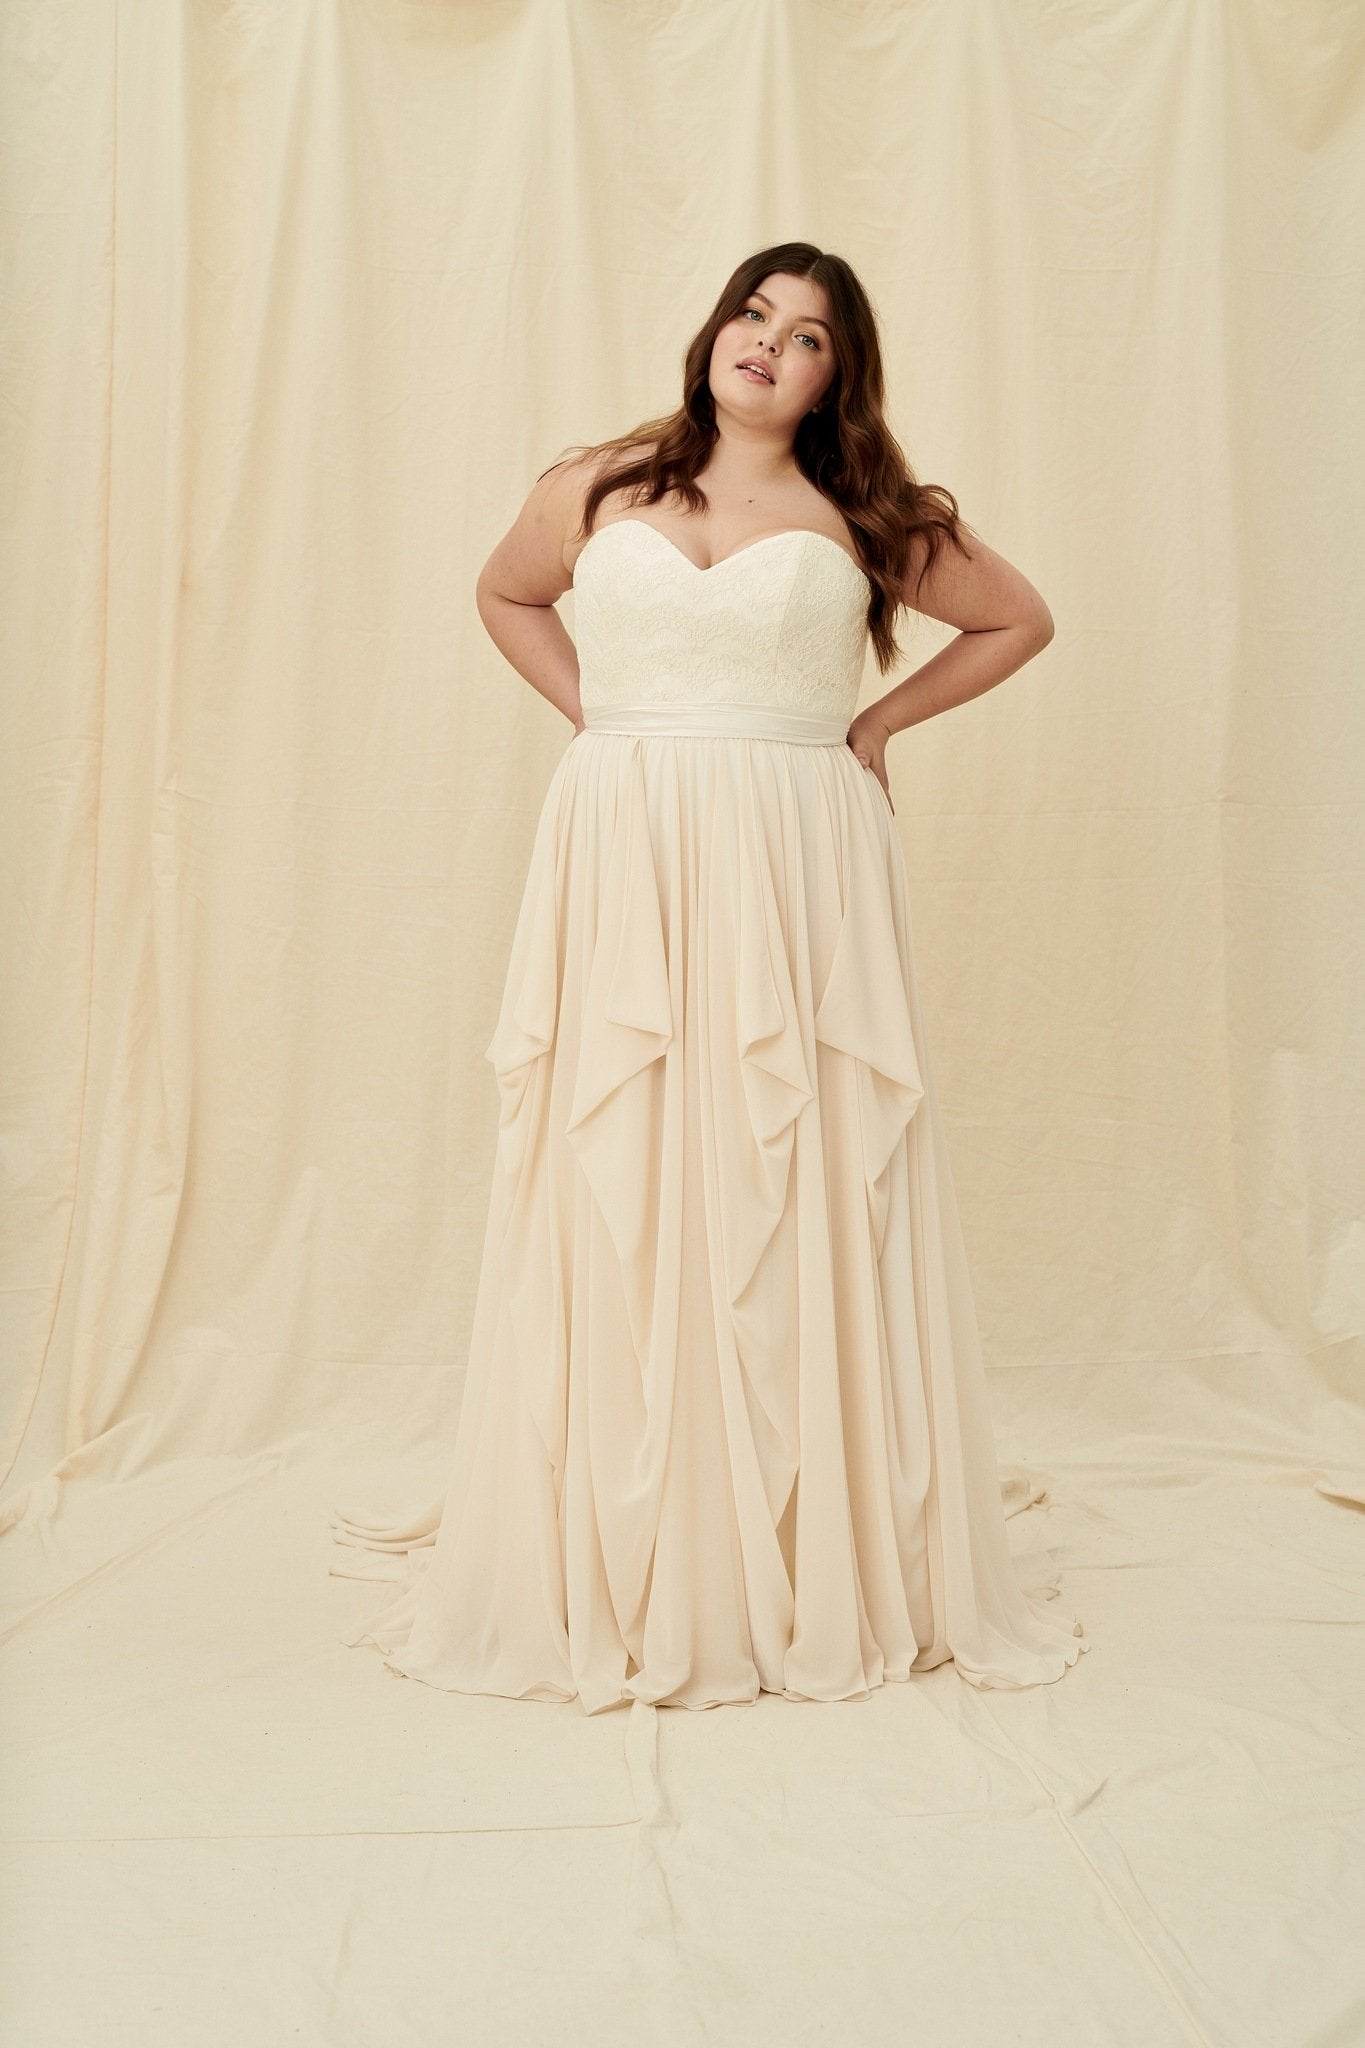 Plus size strapless sweetheart wedding dress with a corset back and a blush-coloured layered chiffon skirt